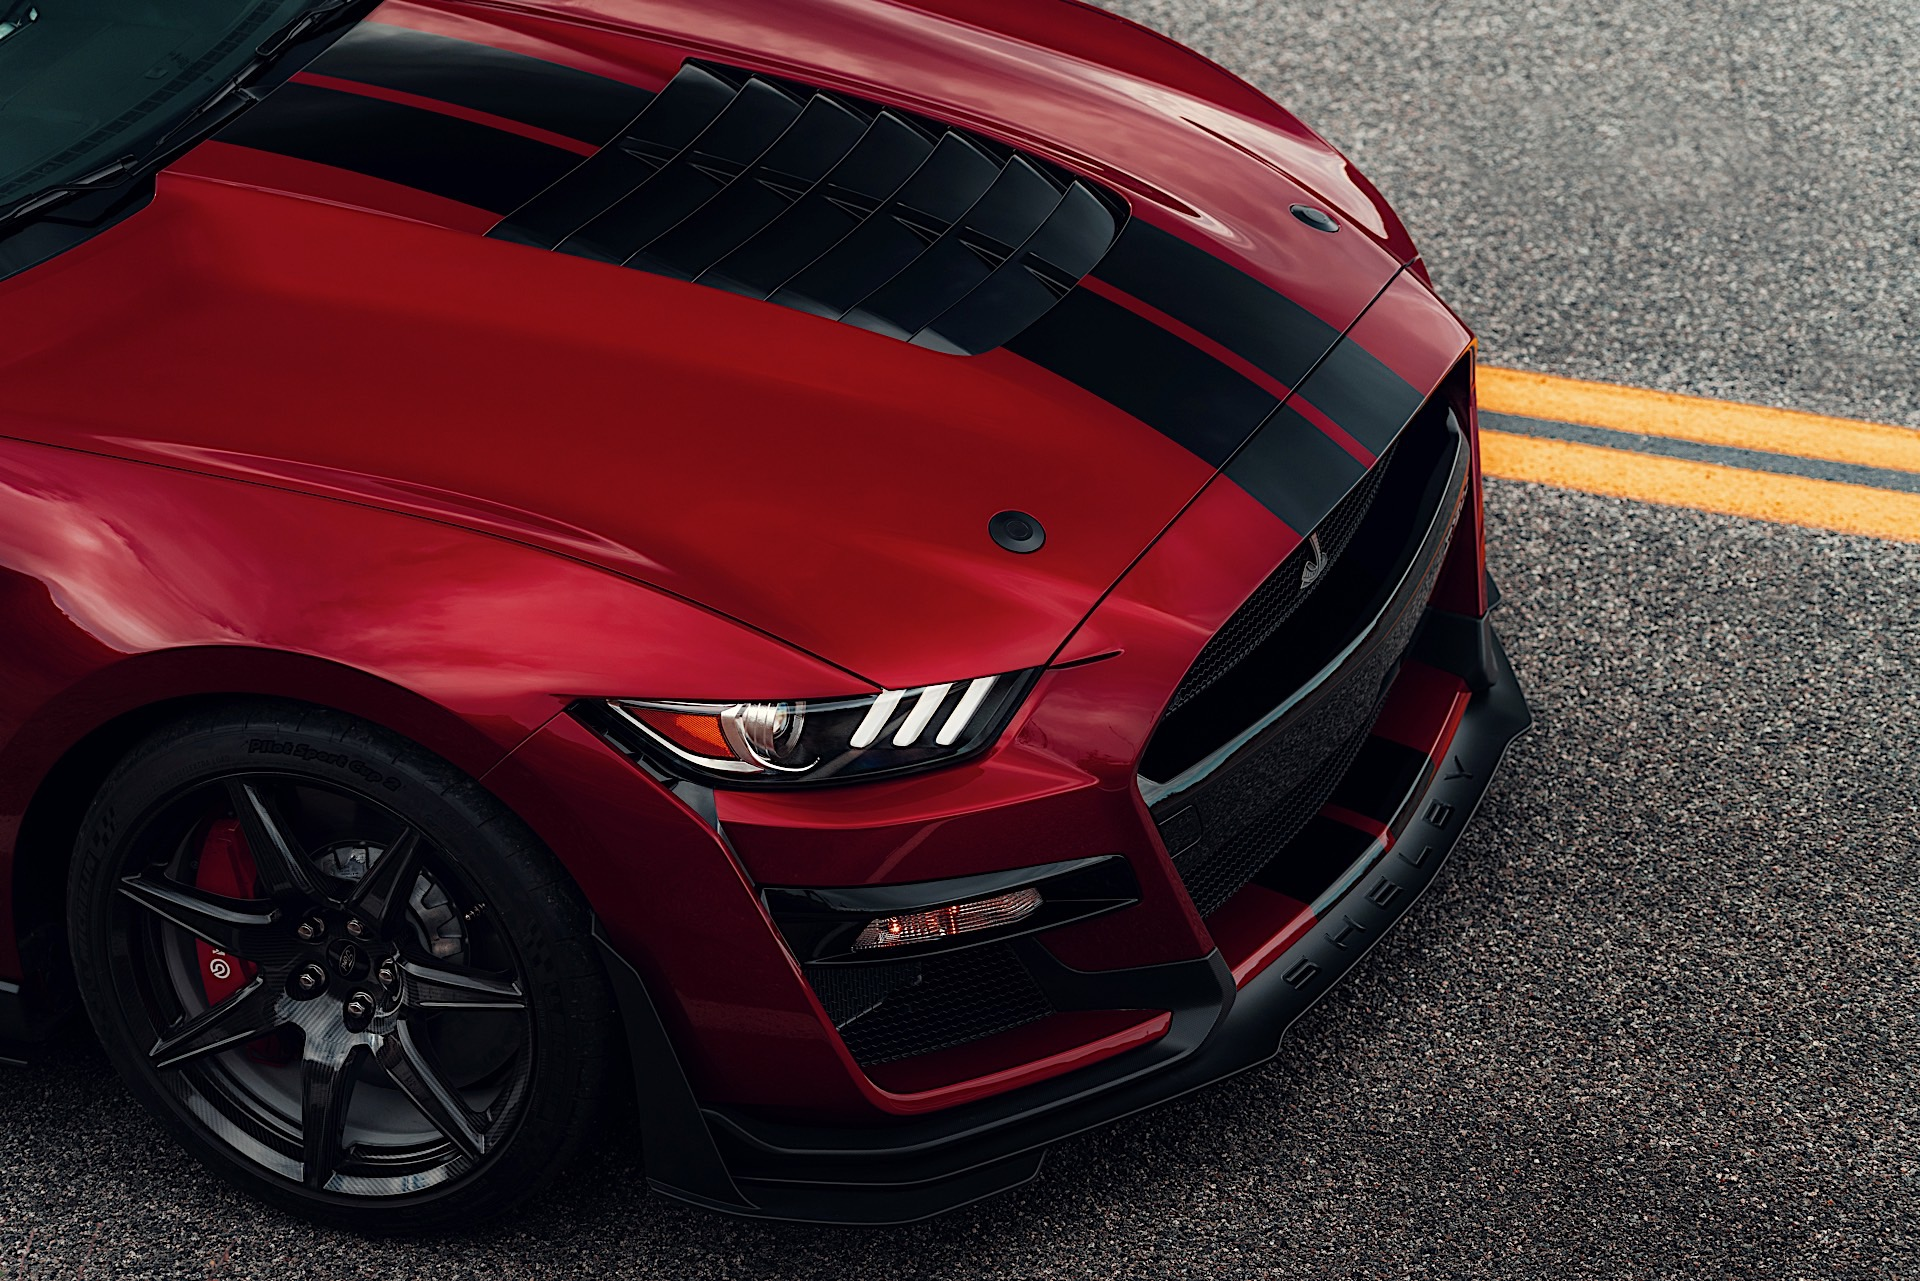 2020 Ford Mustang Shelby Gt500 Roars Into Detroit With 700